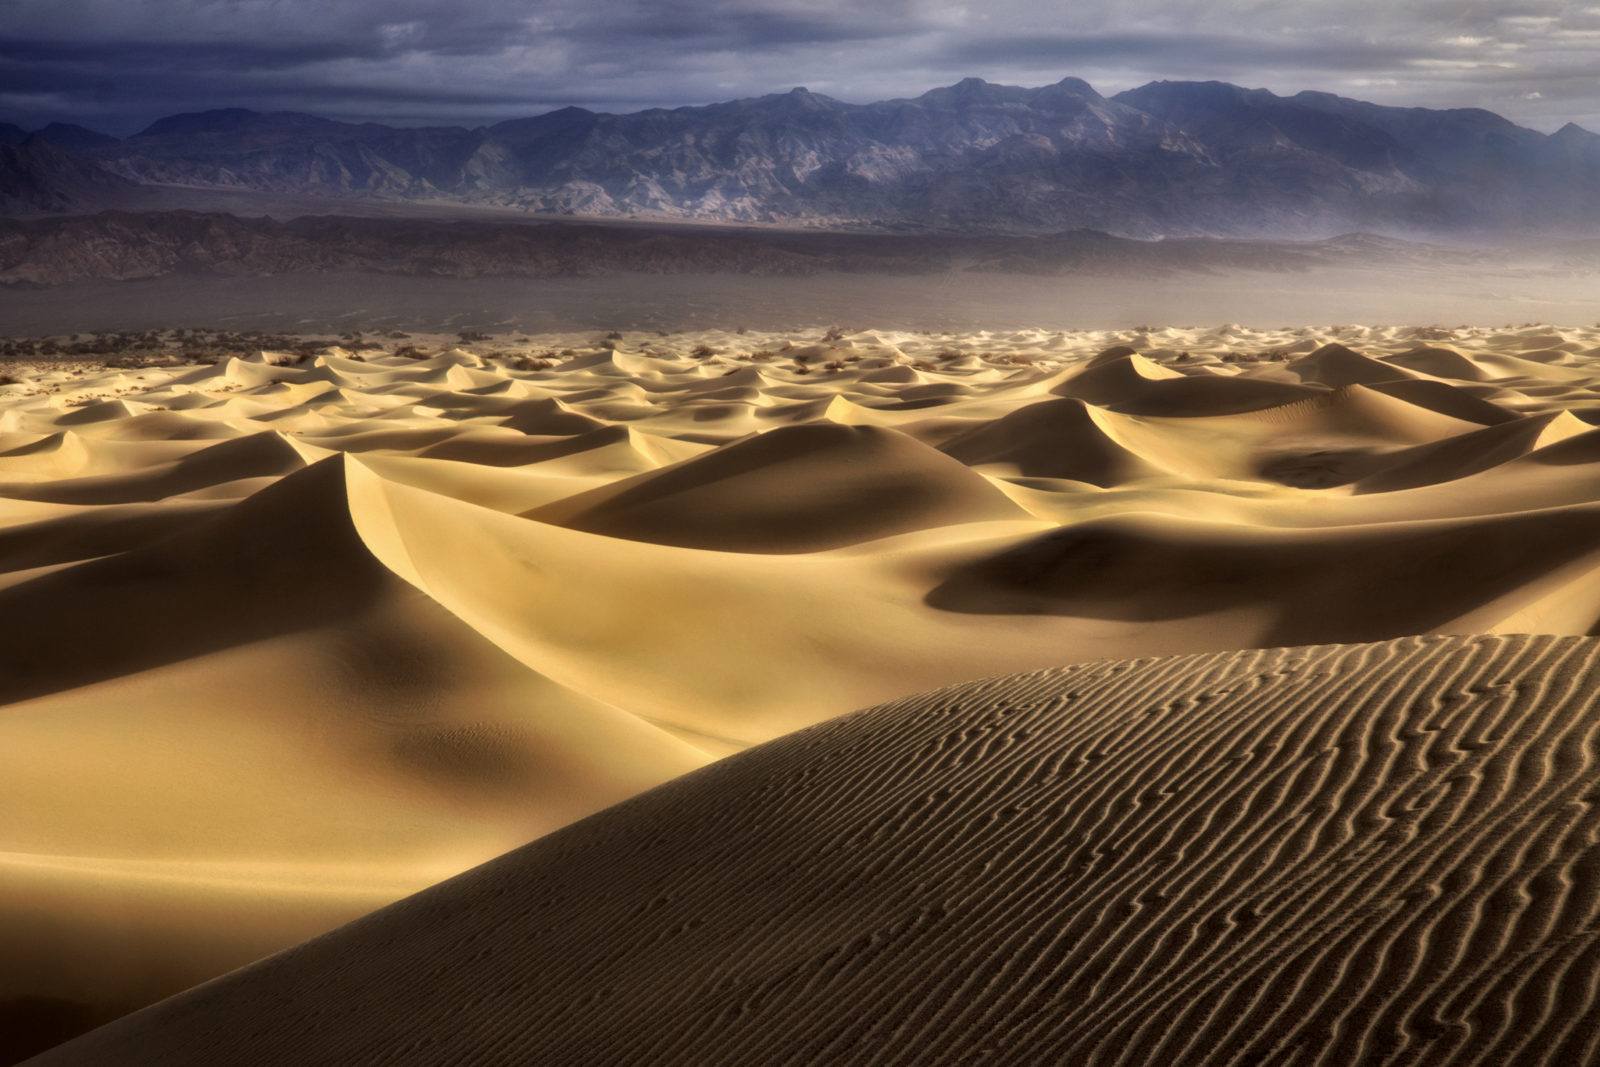 First light and ripple patterned sand dunes. Death Valley National Park, CA